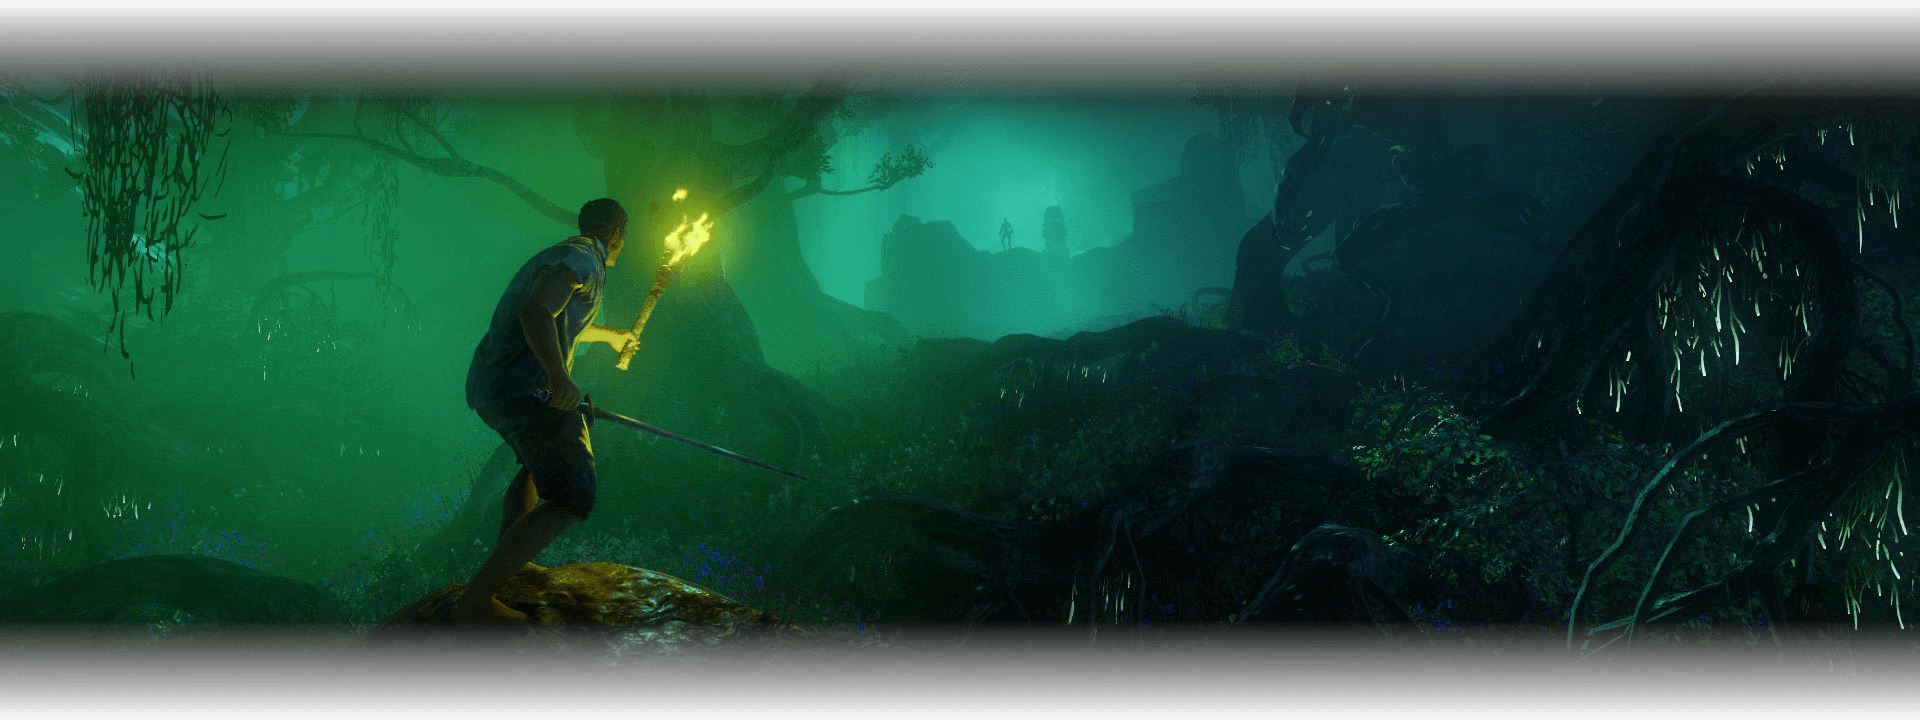 An explorer holds a torch while he walks through the dark and misty forest